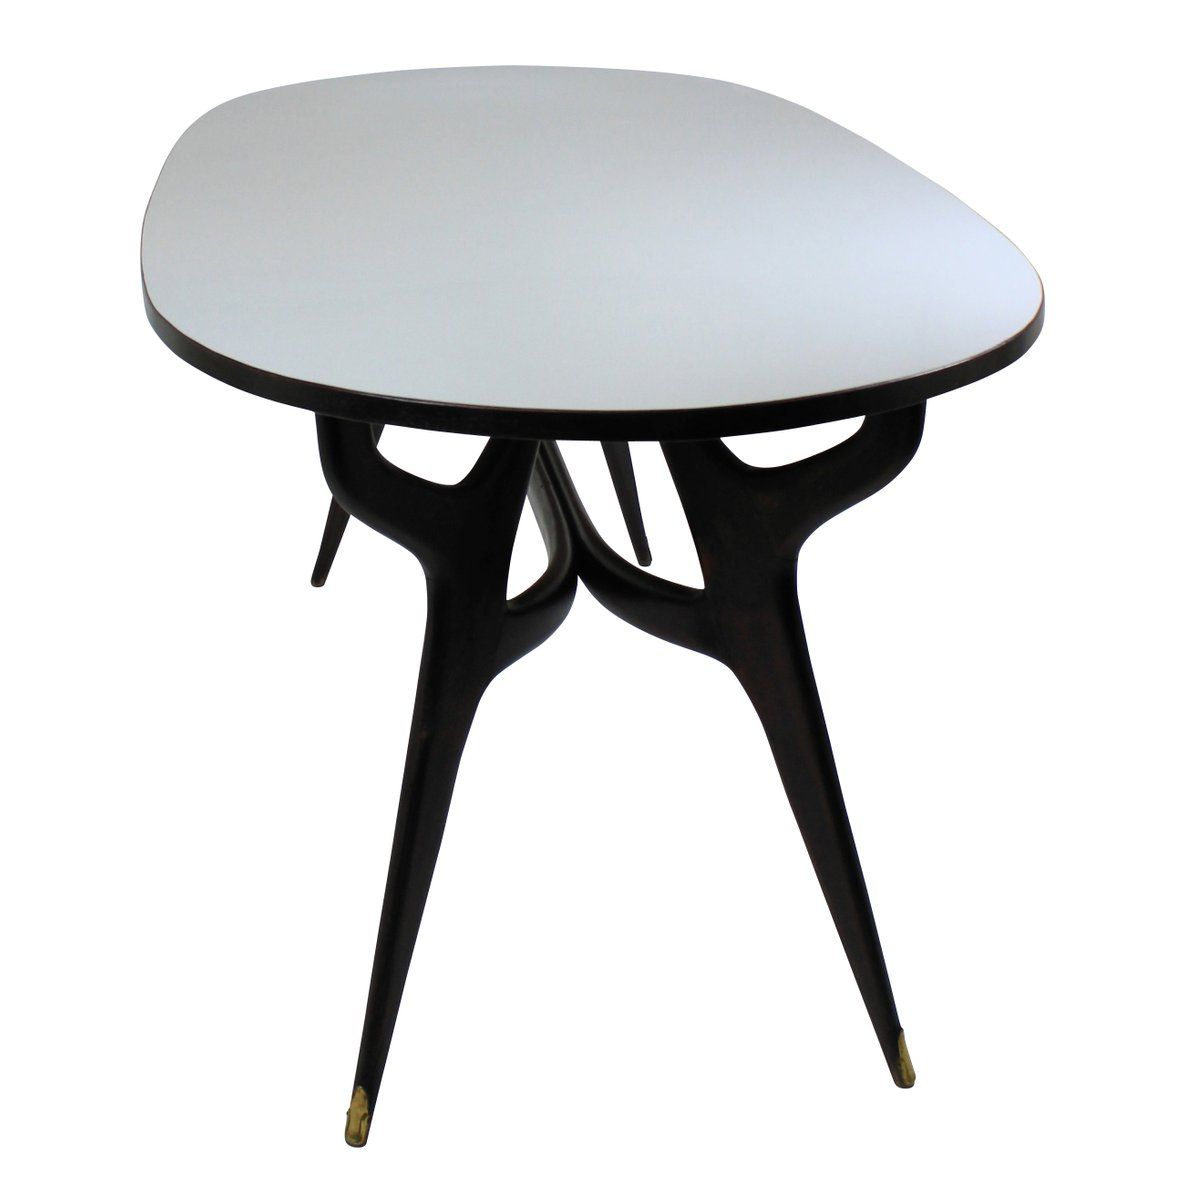 Italian sculptural dining table by ico parisi for sale at for Epl table 99 00